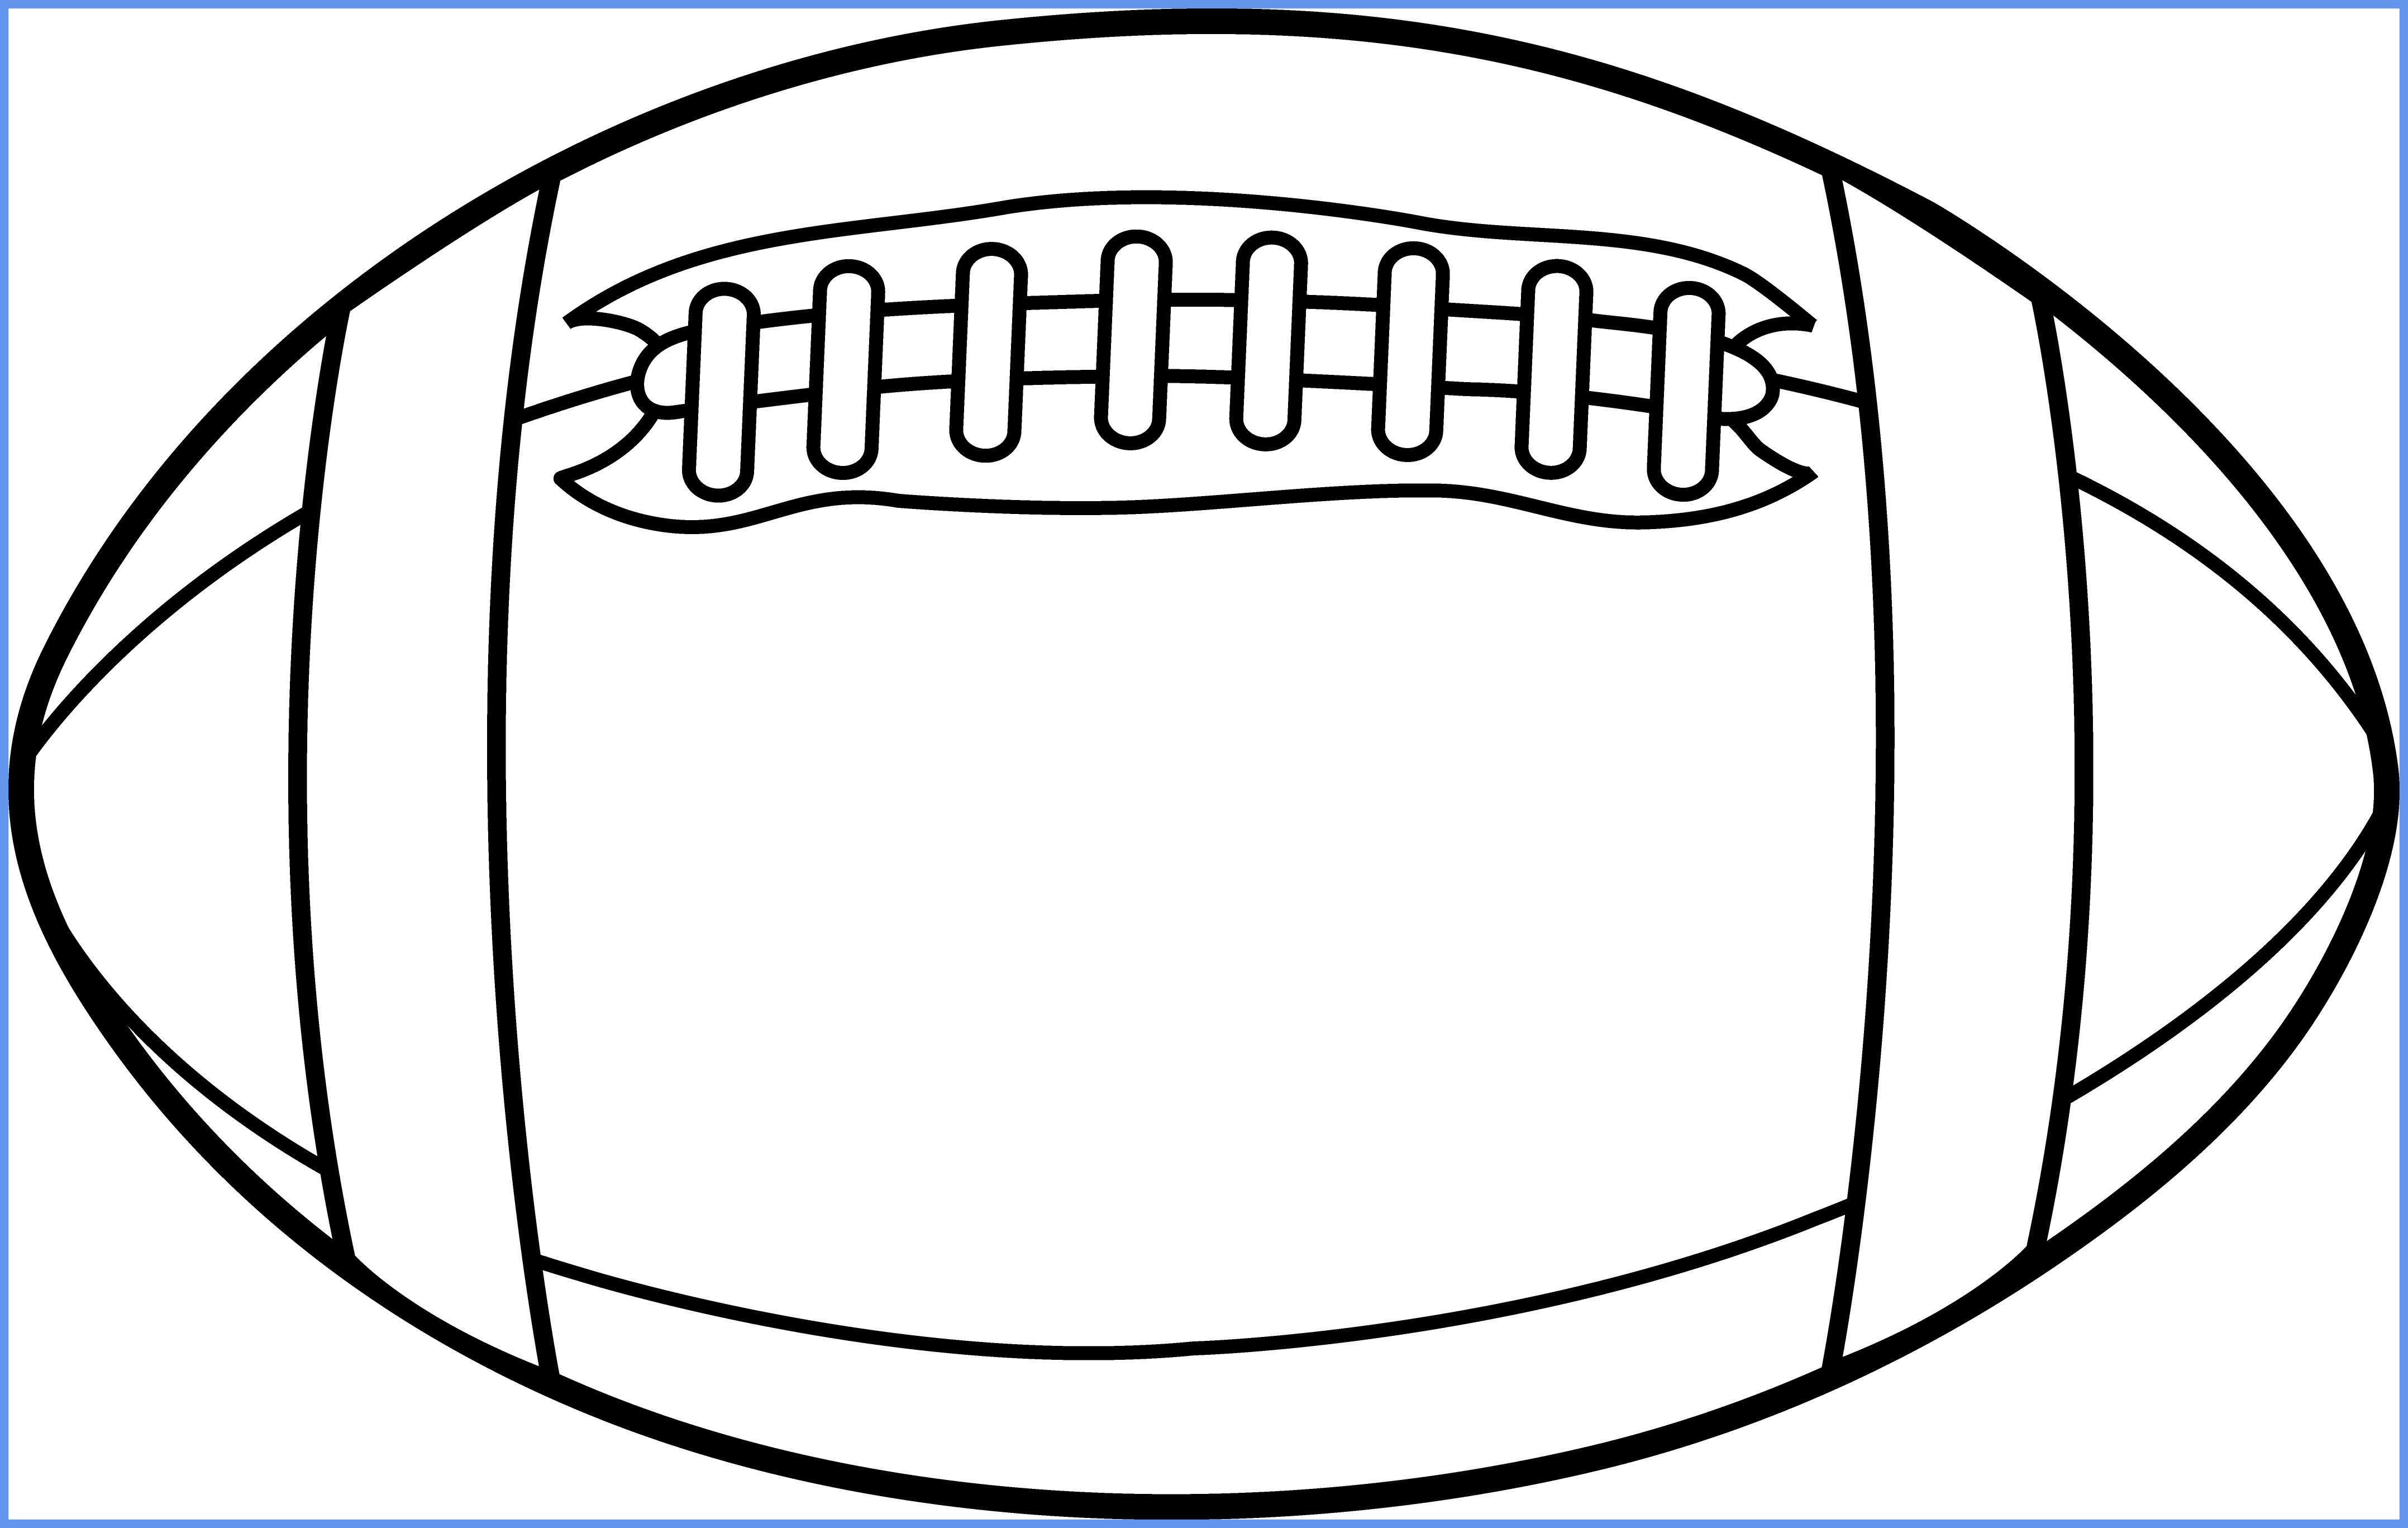 Football laces clipart black and white boutiquefonts com.